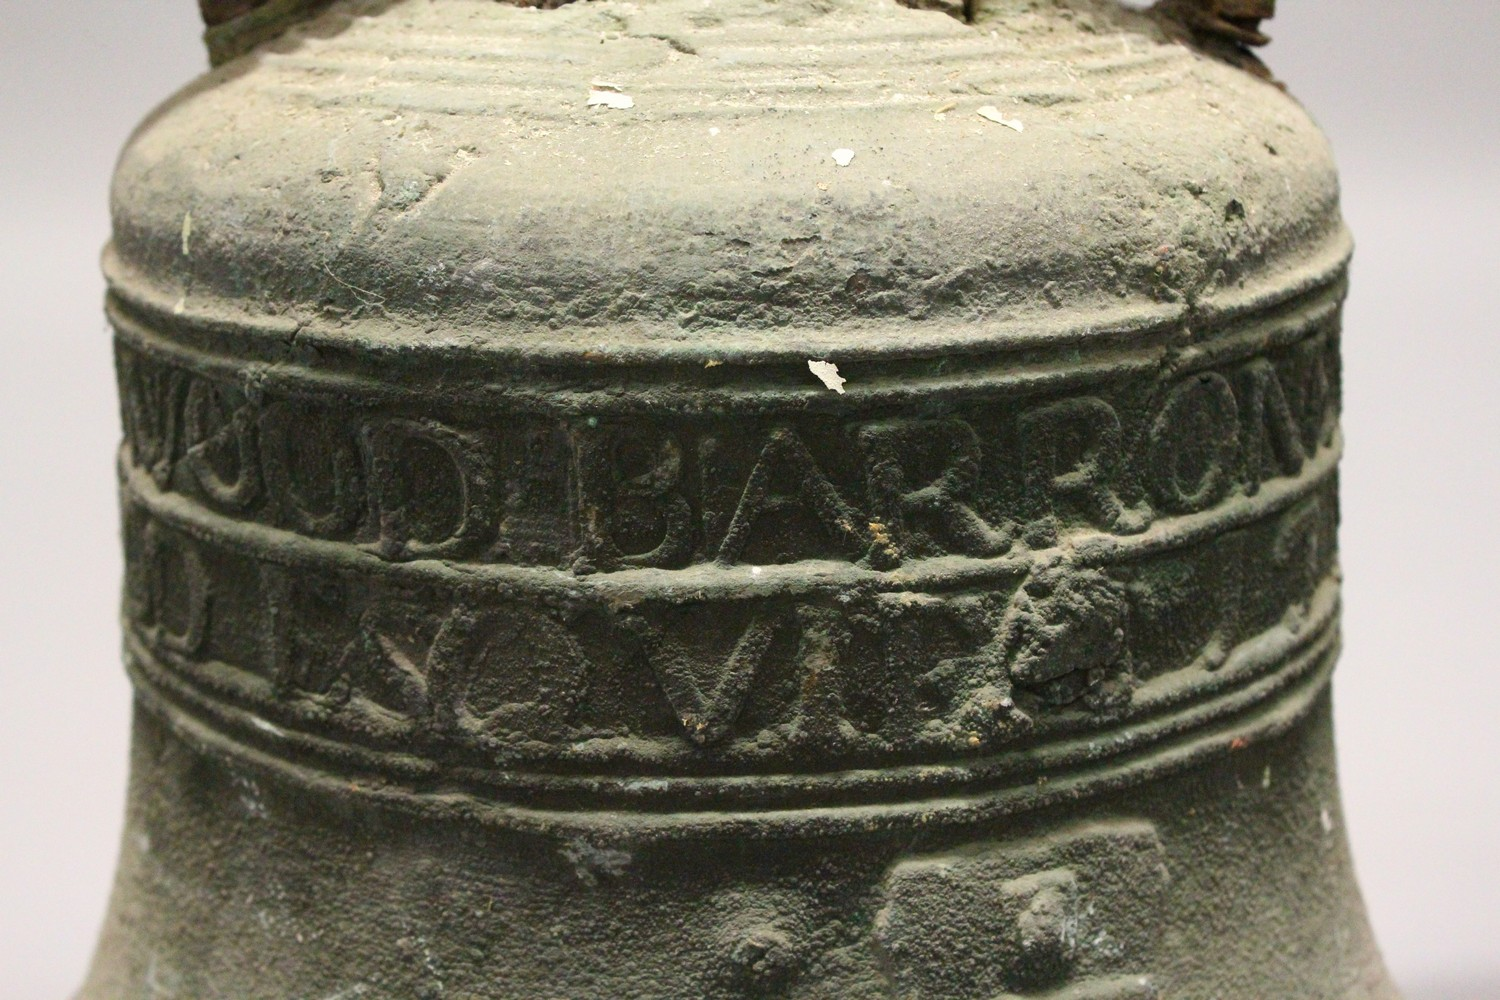 Lot 1343 - AN IMPRESSIVE AND INTERESTING 18TH CENTURY BRONZE BELL, the bell cast with two bands of names: SR